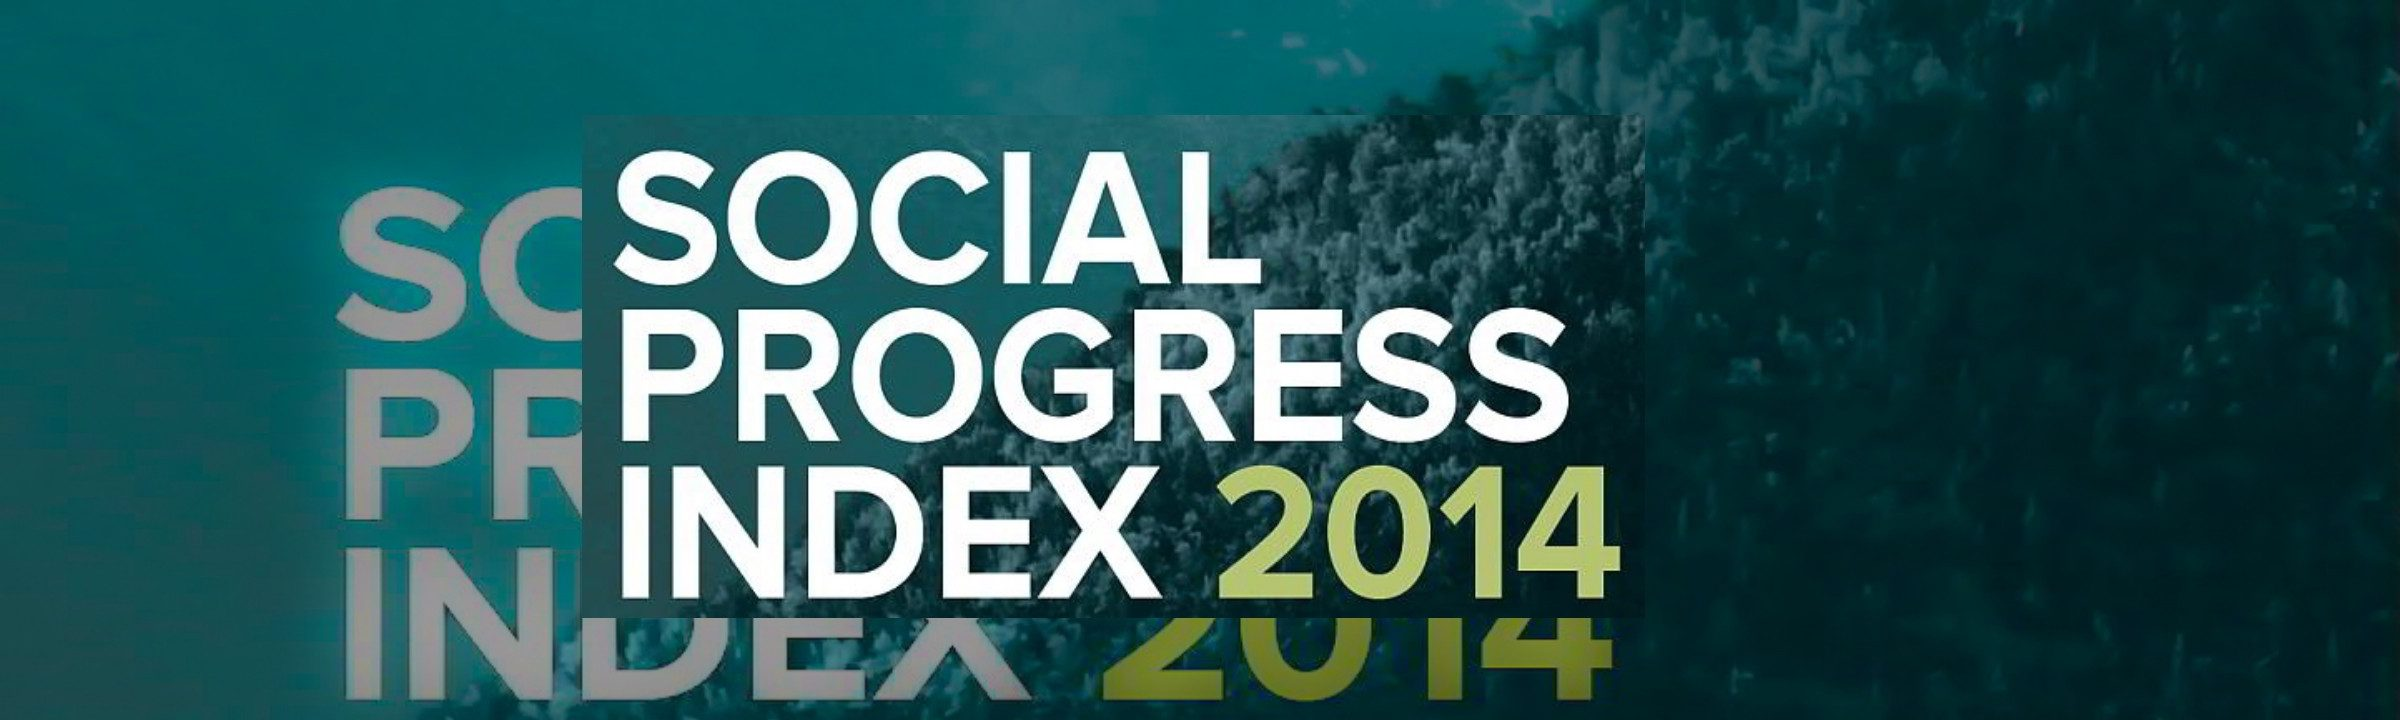 Neuseeland auf Platz 1 des Social Progress Index